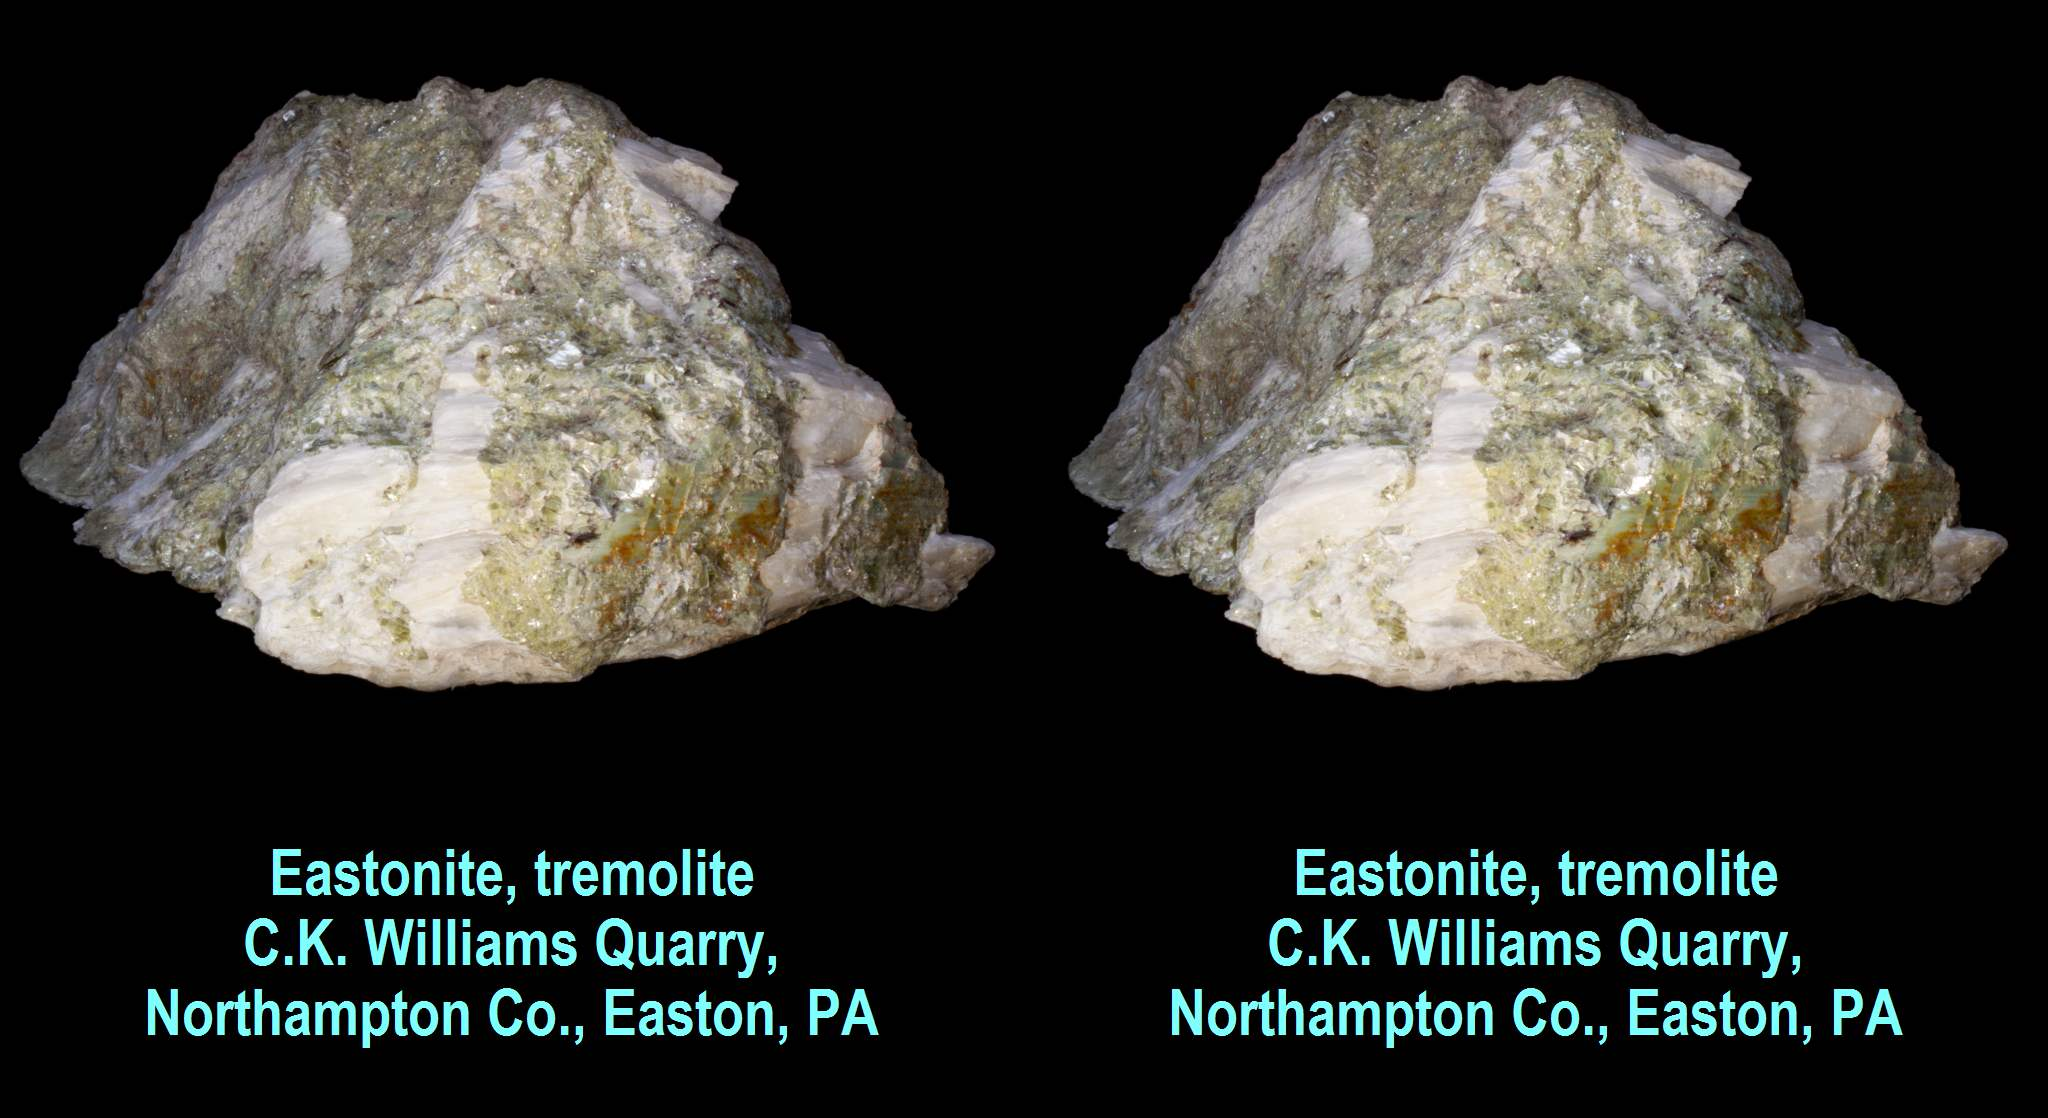 Eastonite, tremolite - C.K. Williams Quarry,Northampton County, Easton, PA